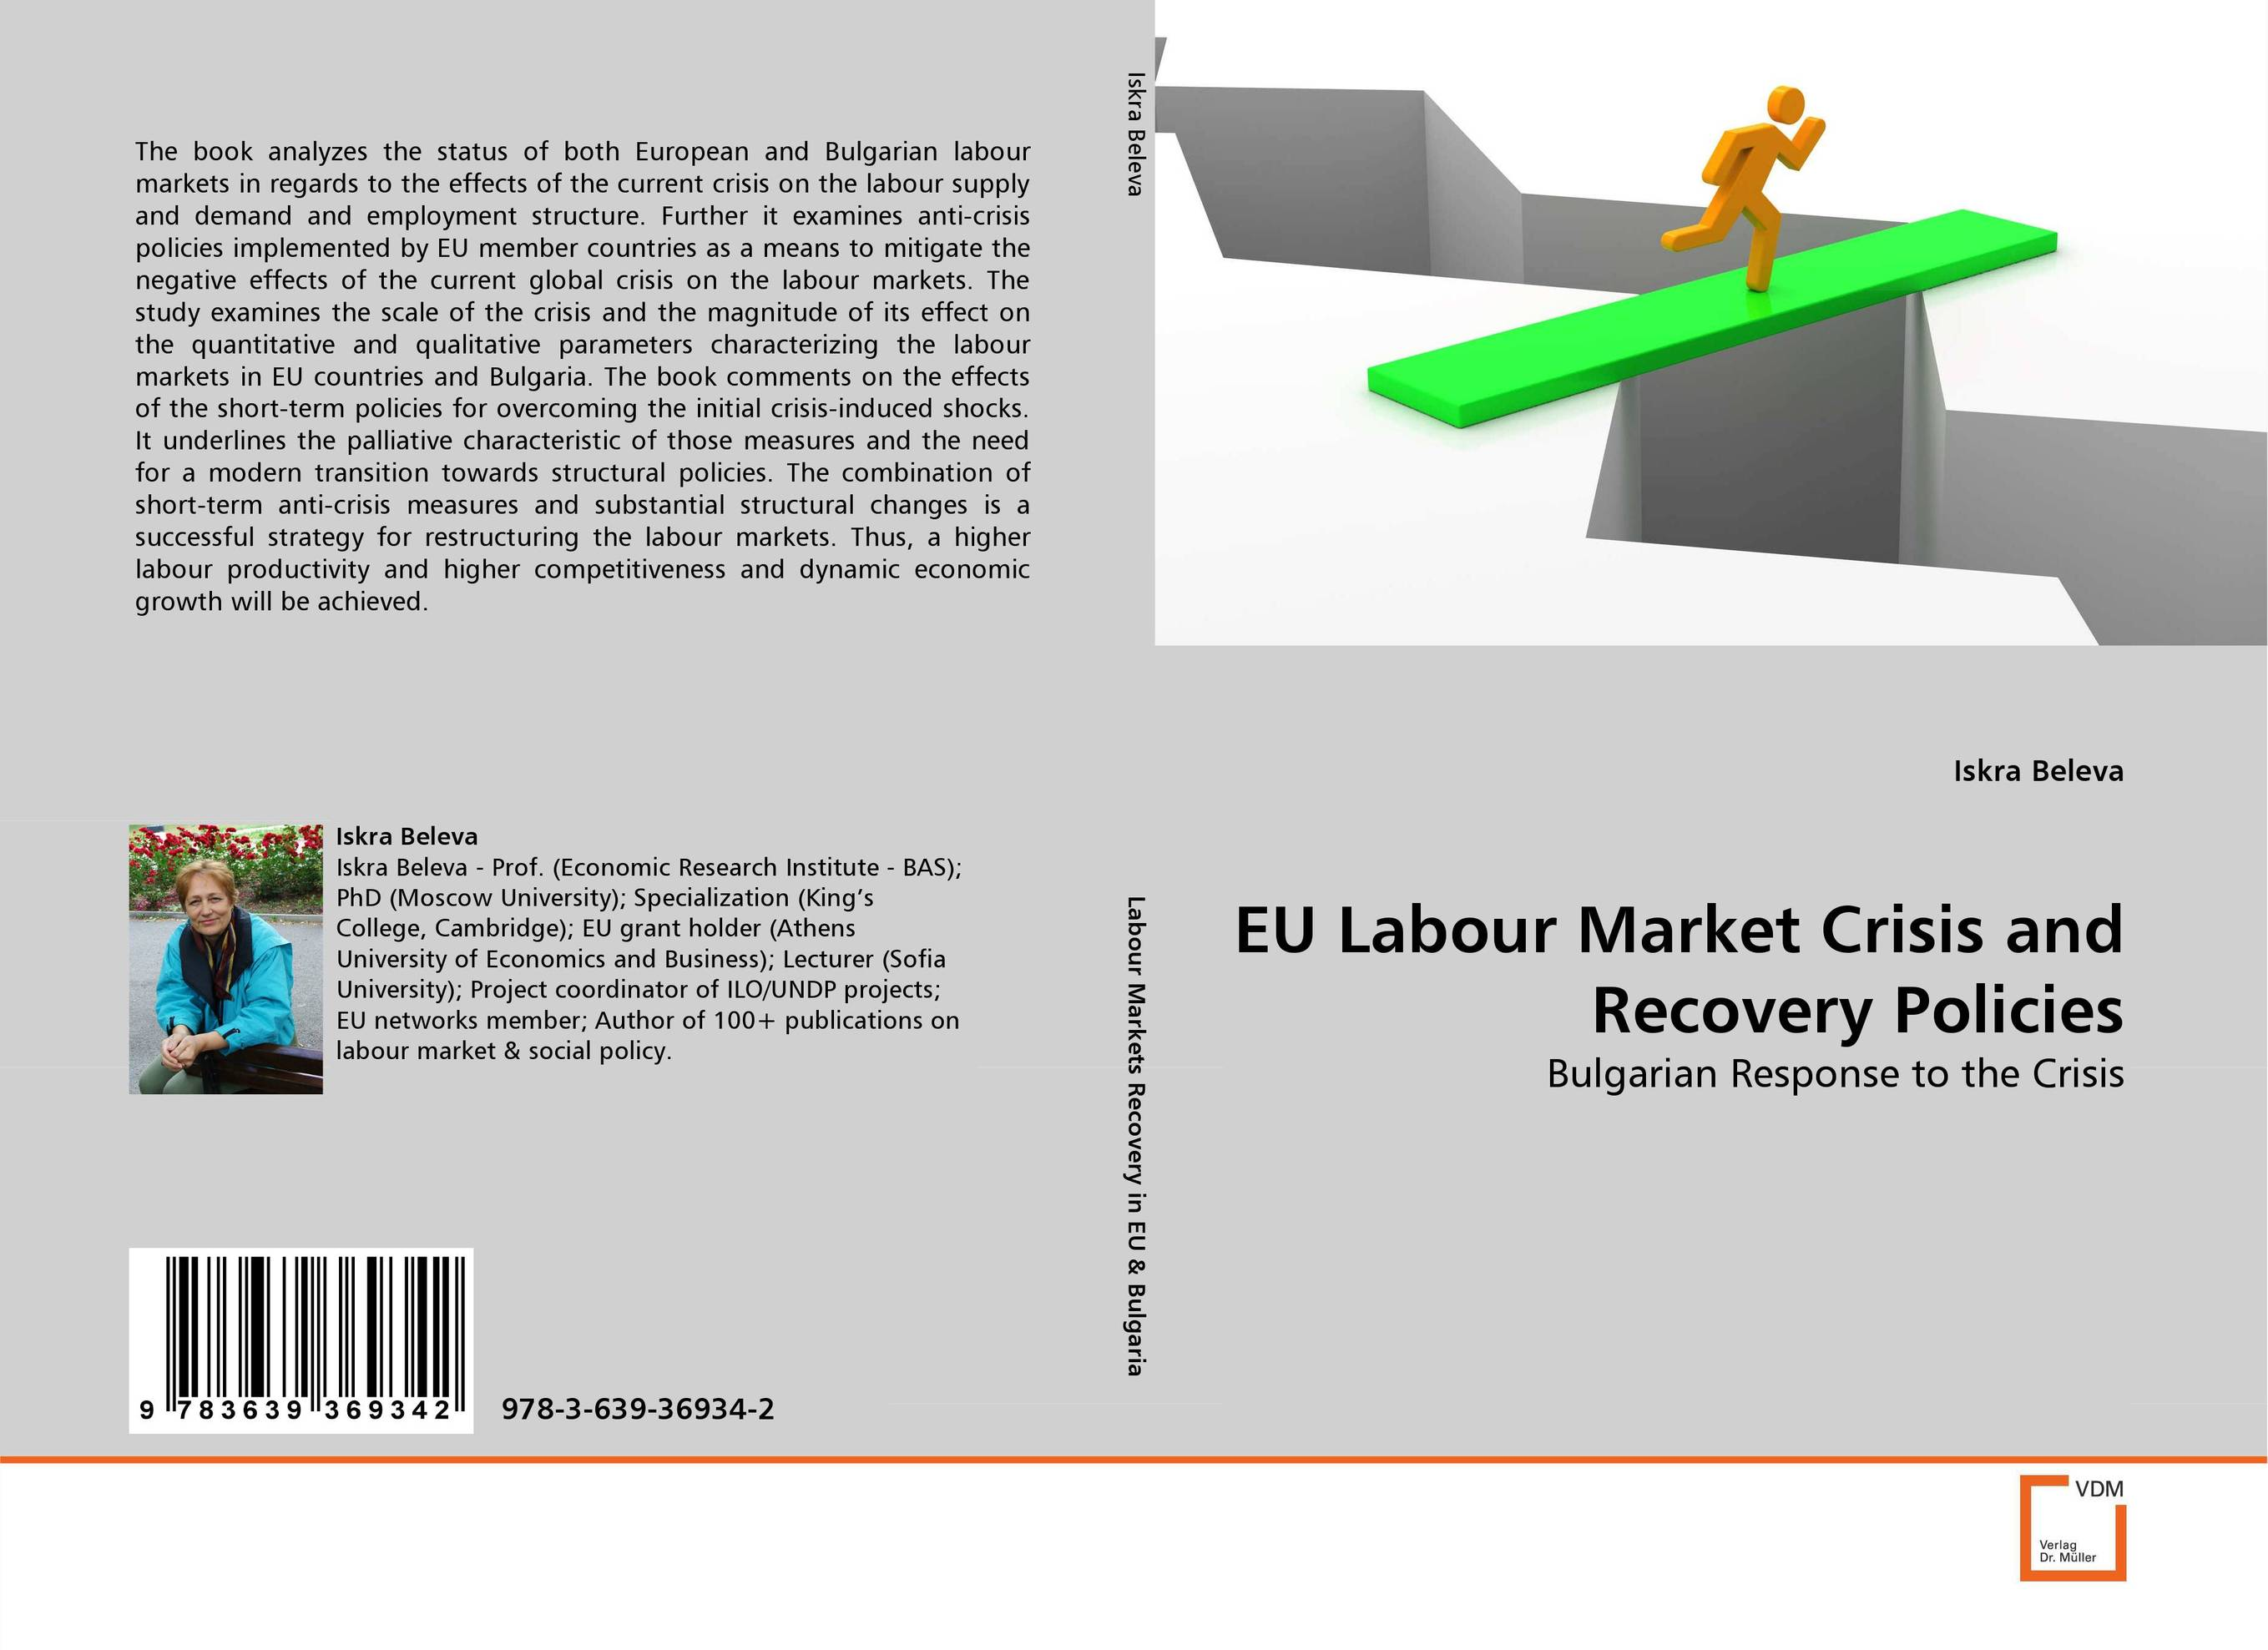 EU Labour Market Crisis and Recovery Policies